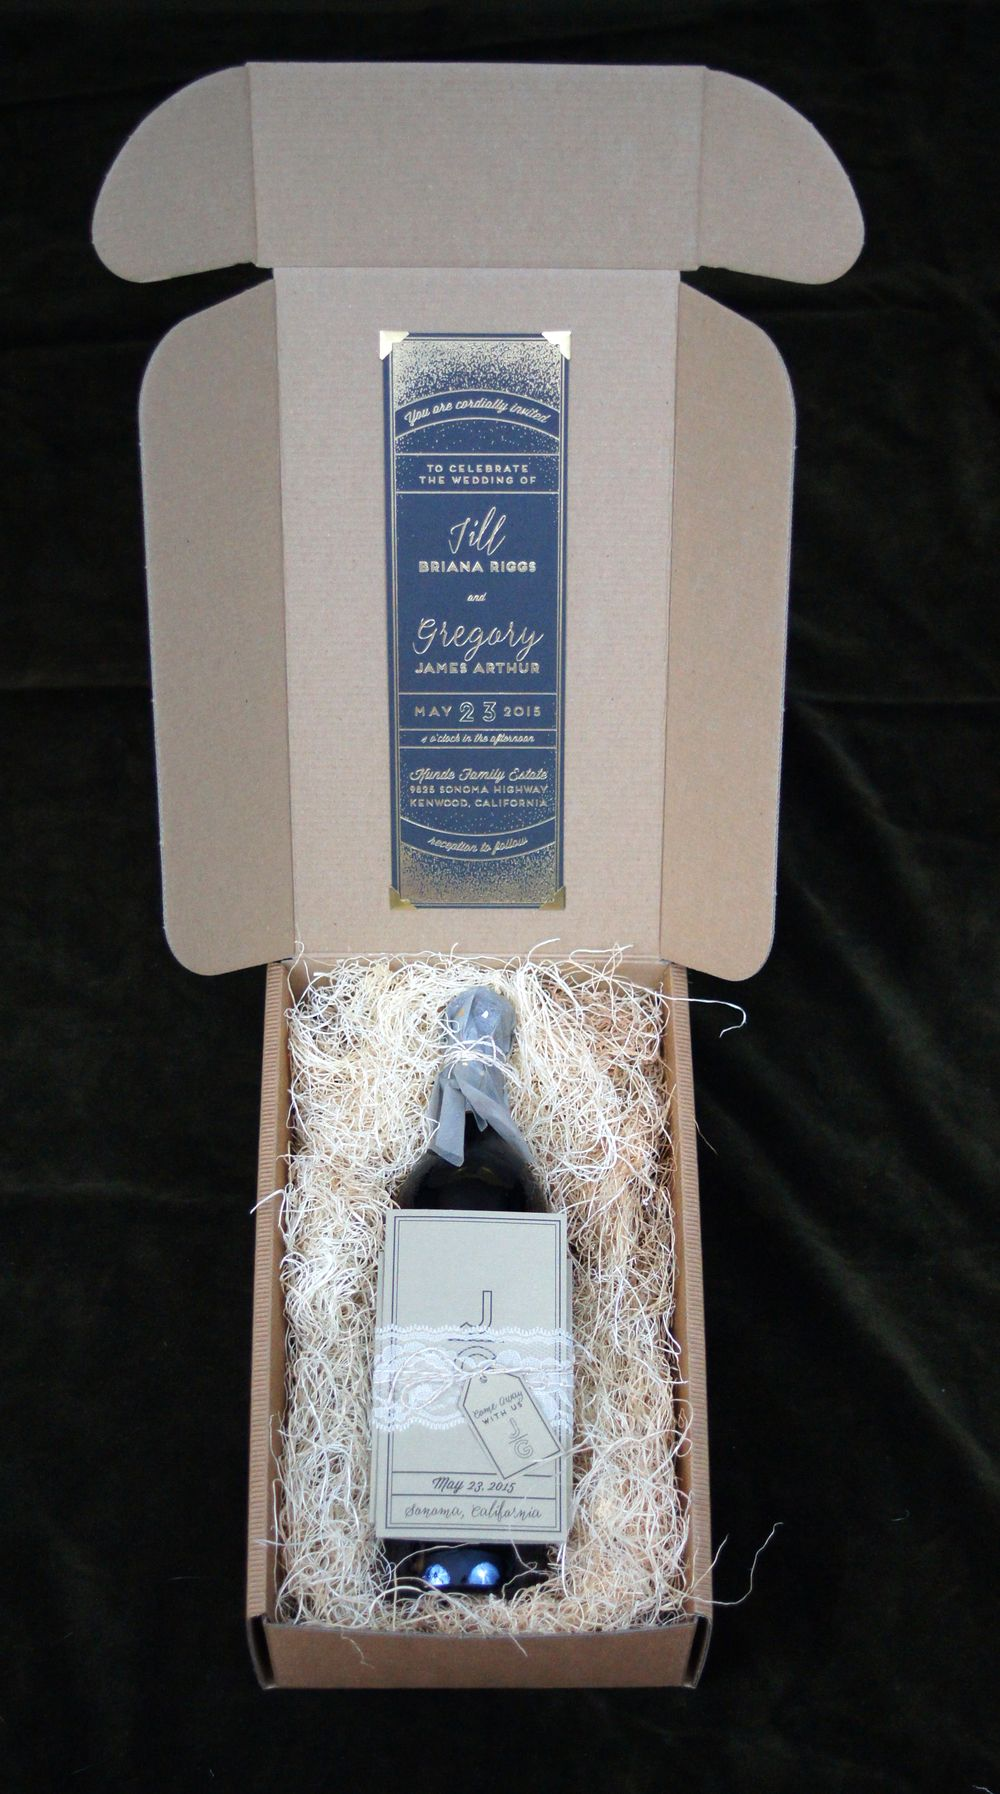 Wine Box Vineyard Wedding Invitation Set With Bottle Gold Foil And Lace Details